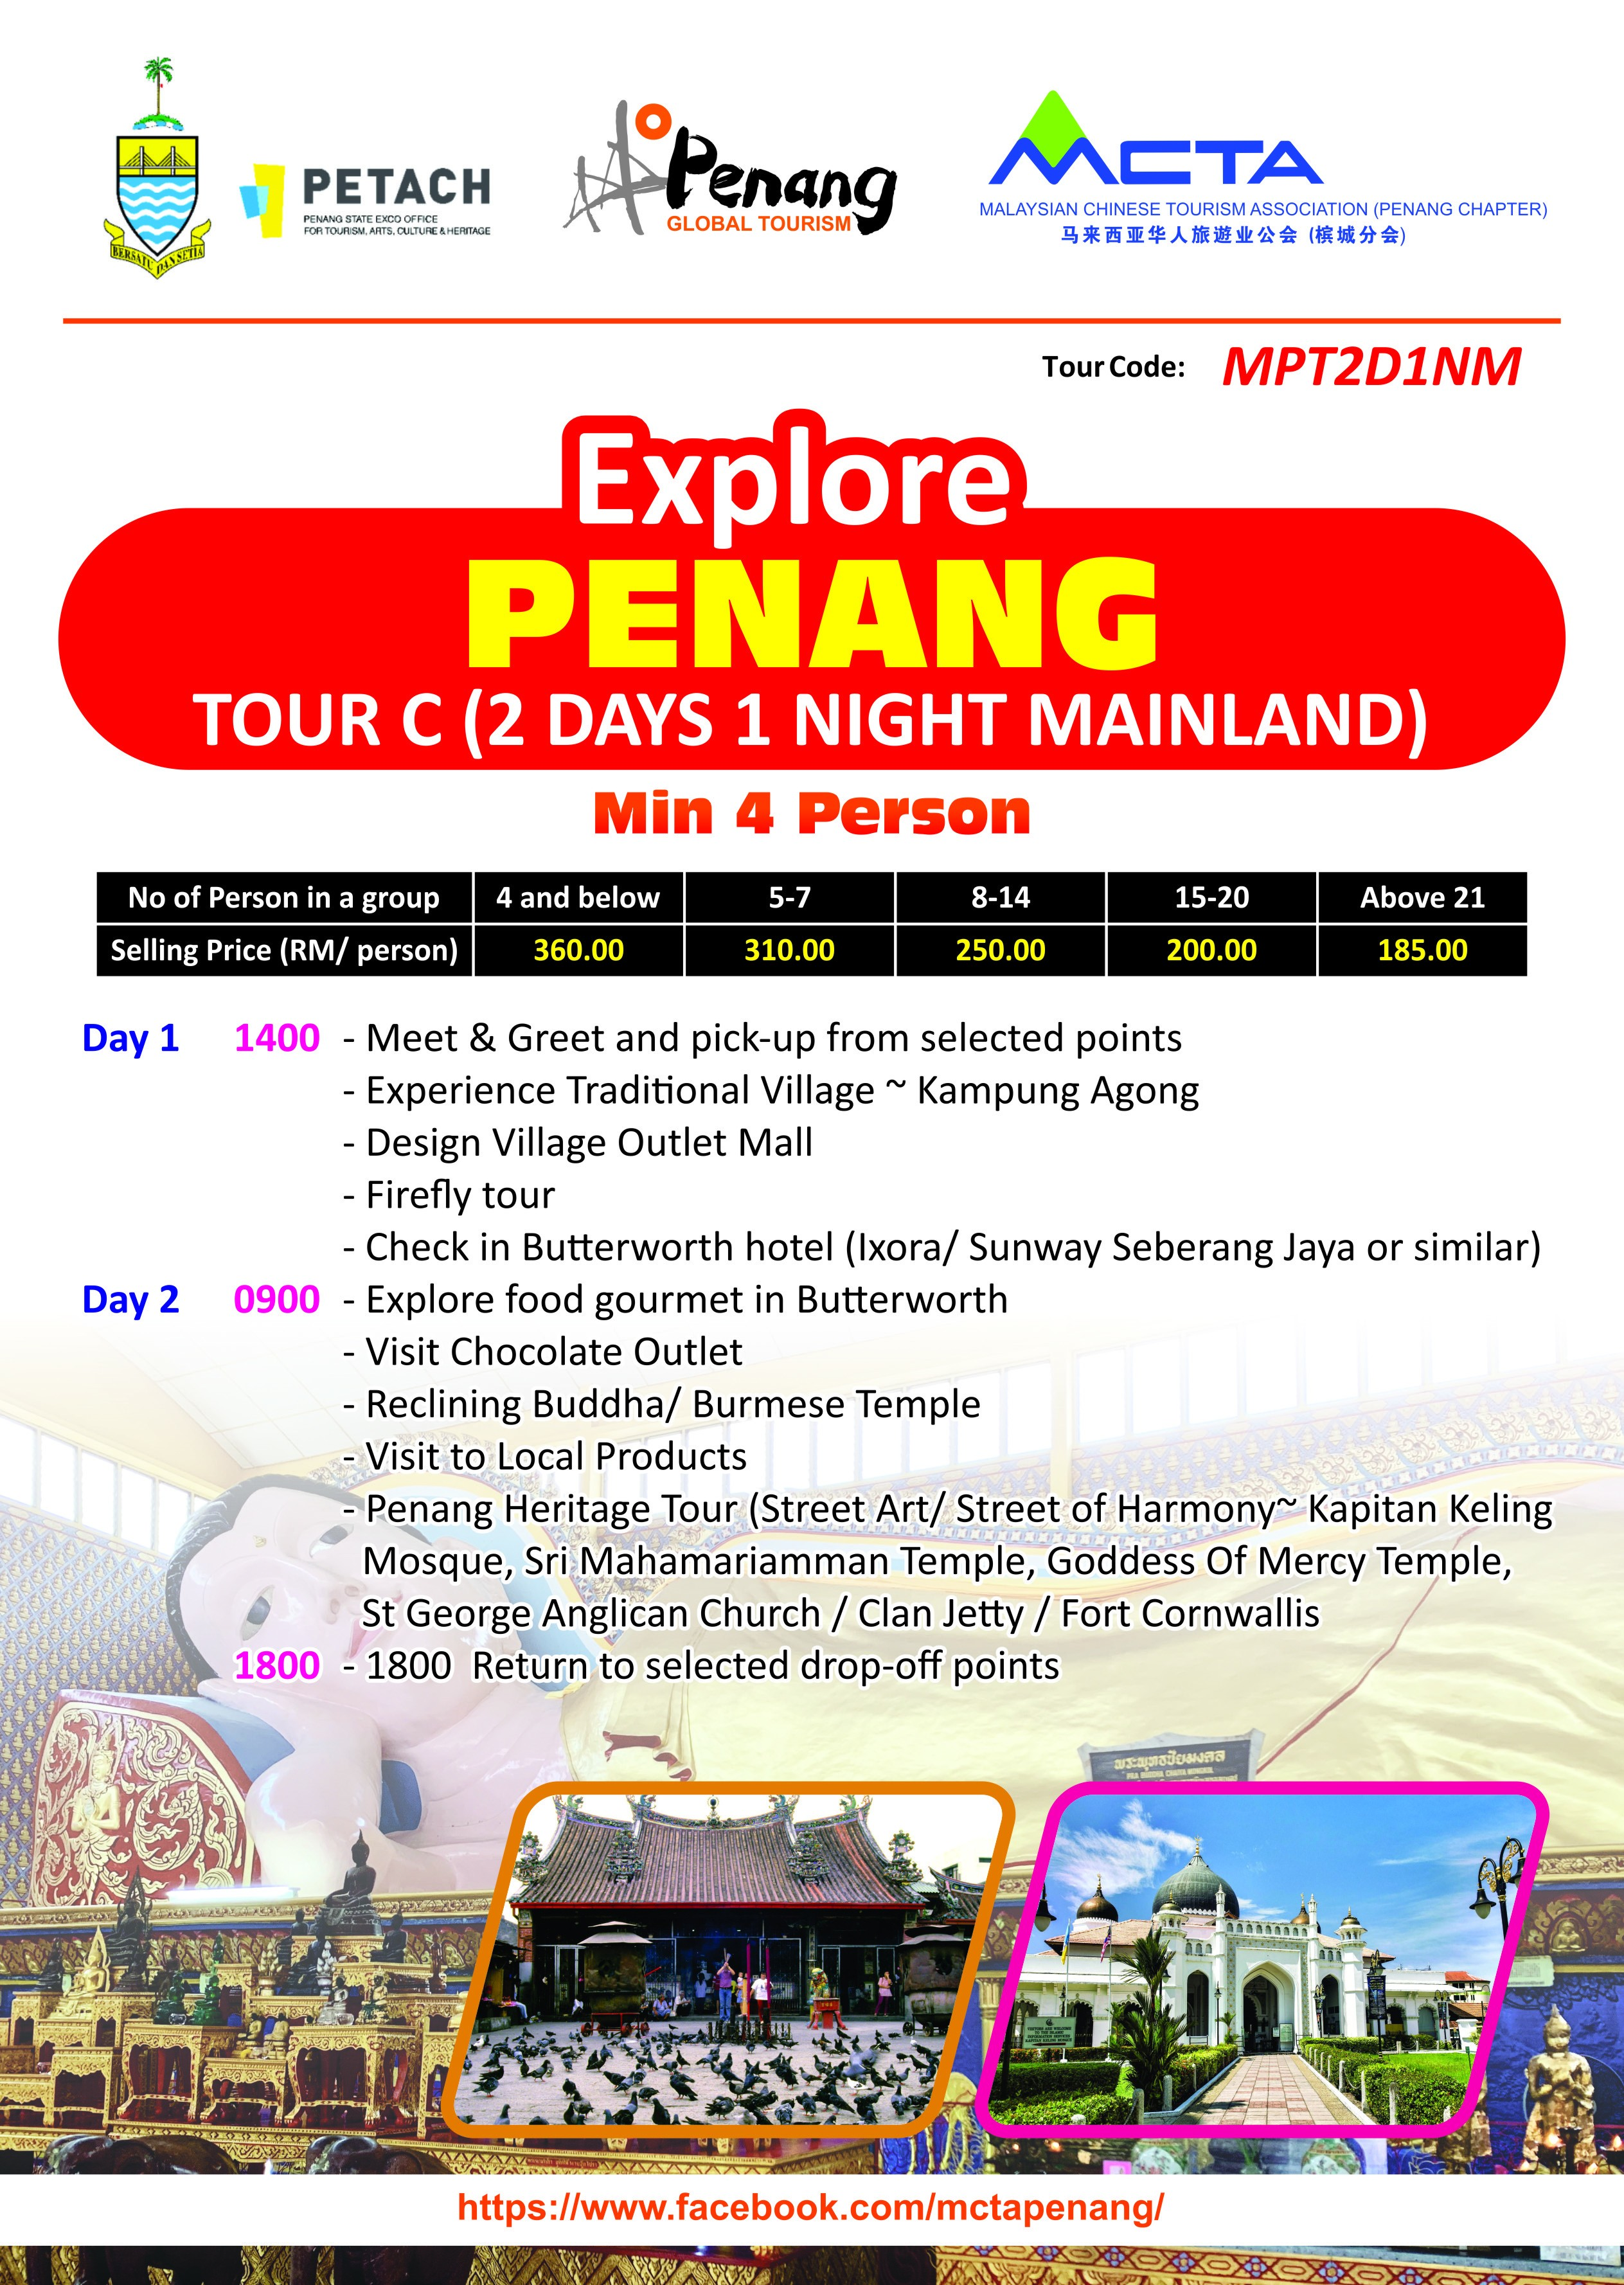 Explore Penang - Tour C (2 Days 1 Night Mainland)